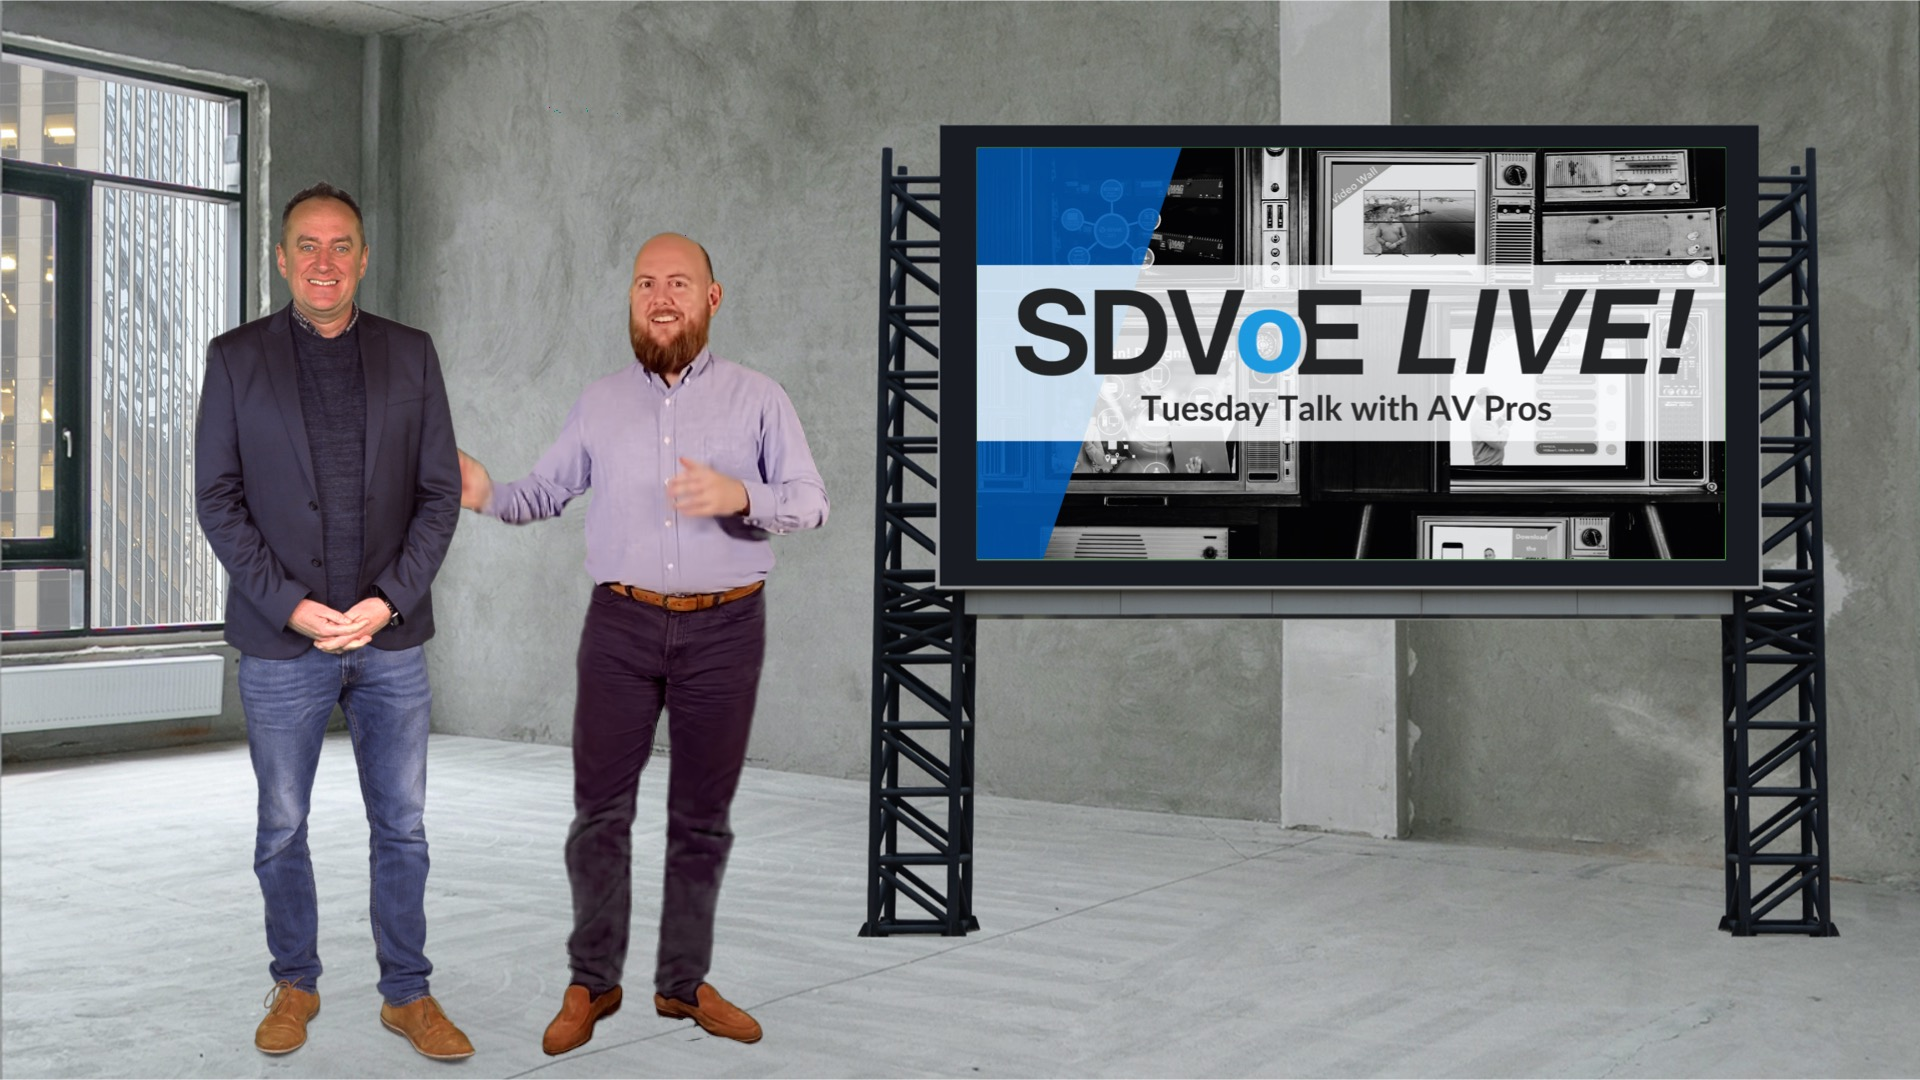 SDVoE LIVE! Episode 2: What is a Network, Anyway?